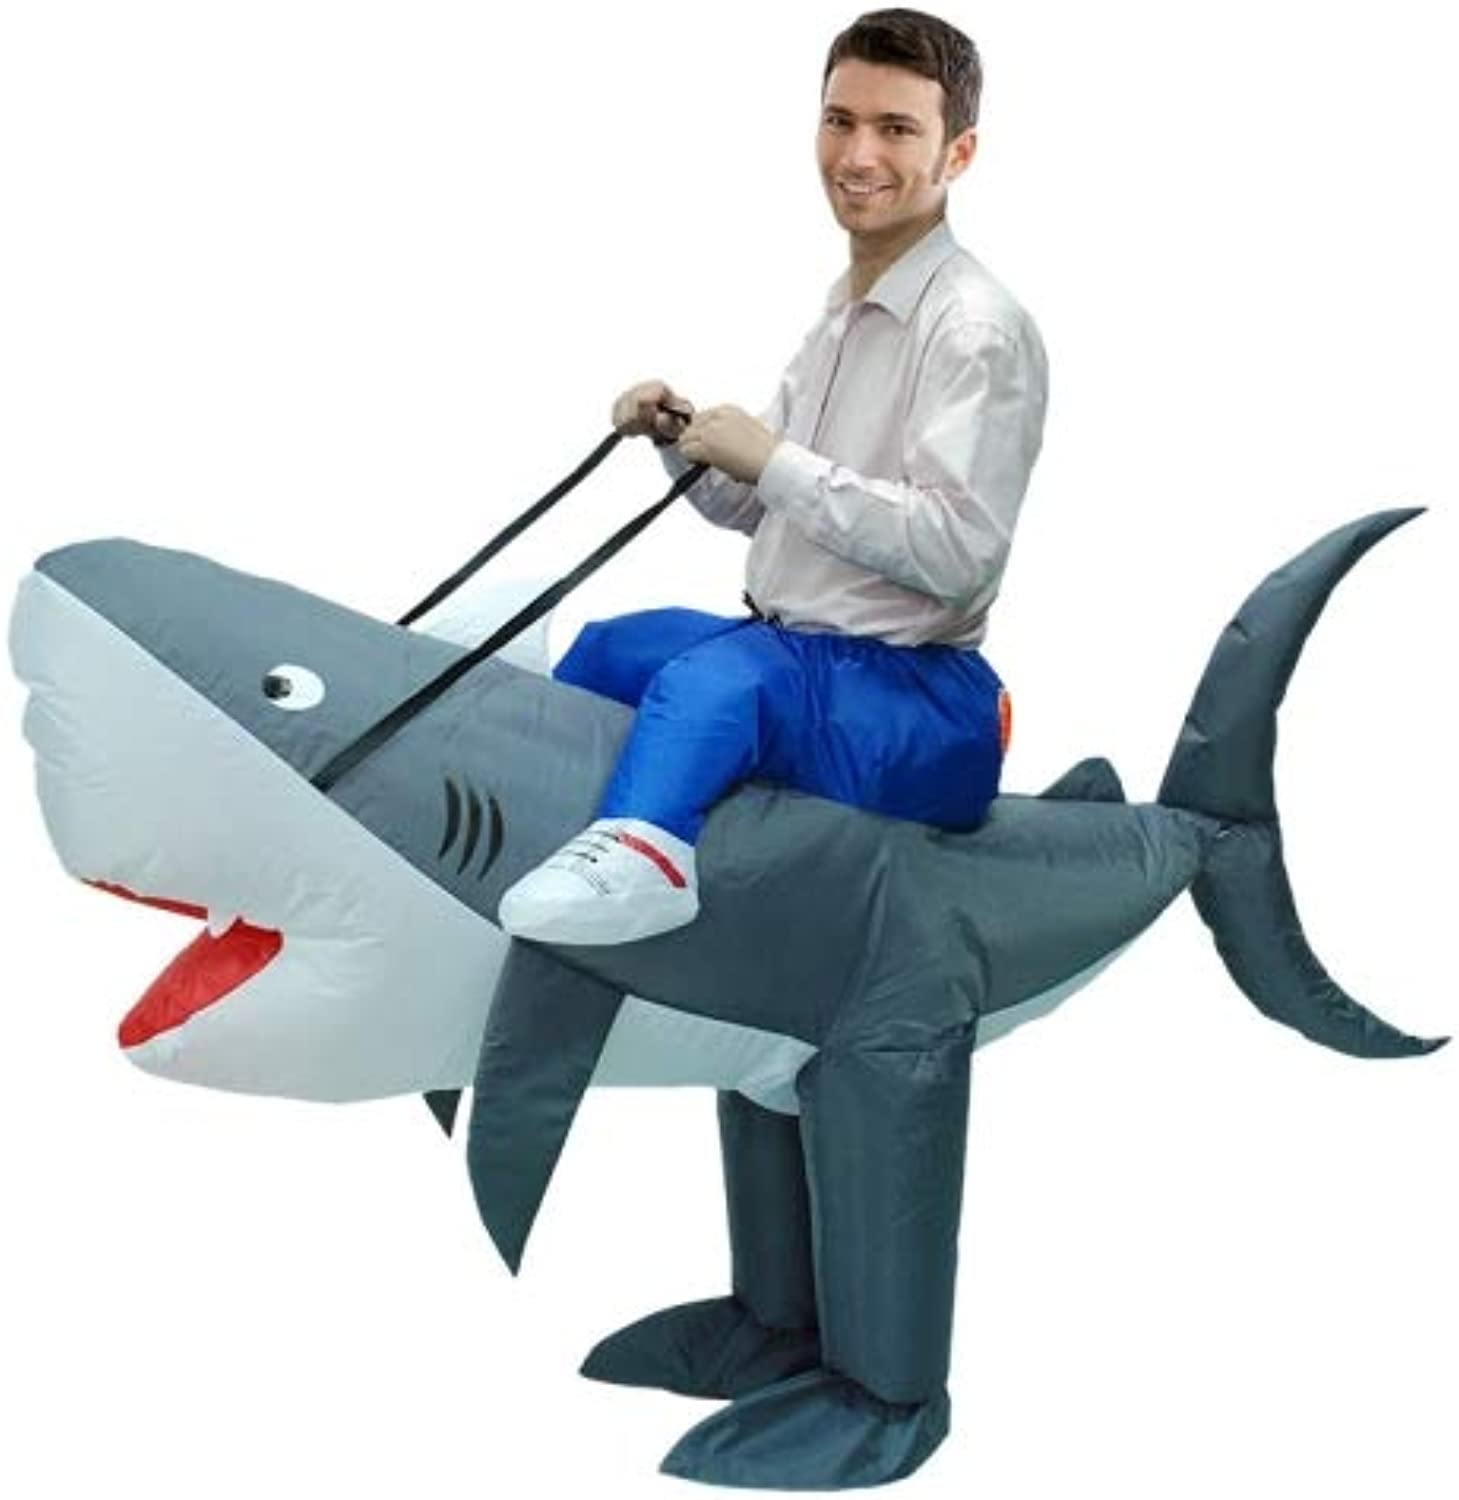 Operated Inflatable Shark Fancy Polyester Dress Halloween Party Costume for Adult, Recommended Height  1.5-1.9m